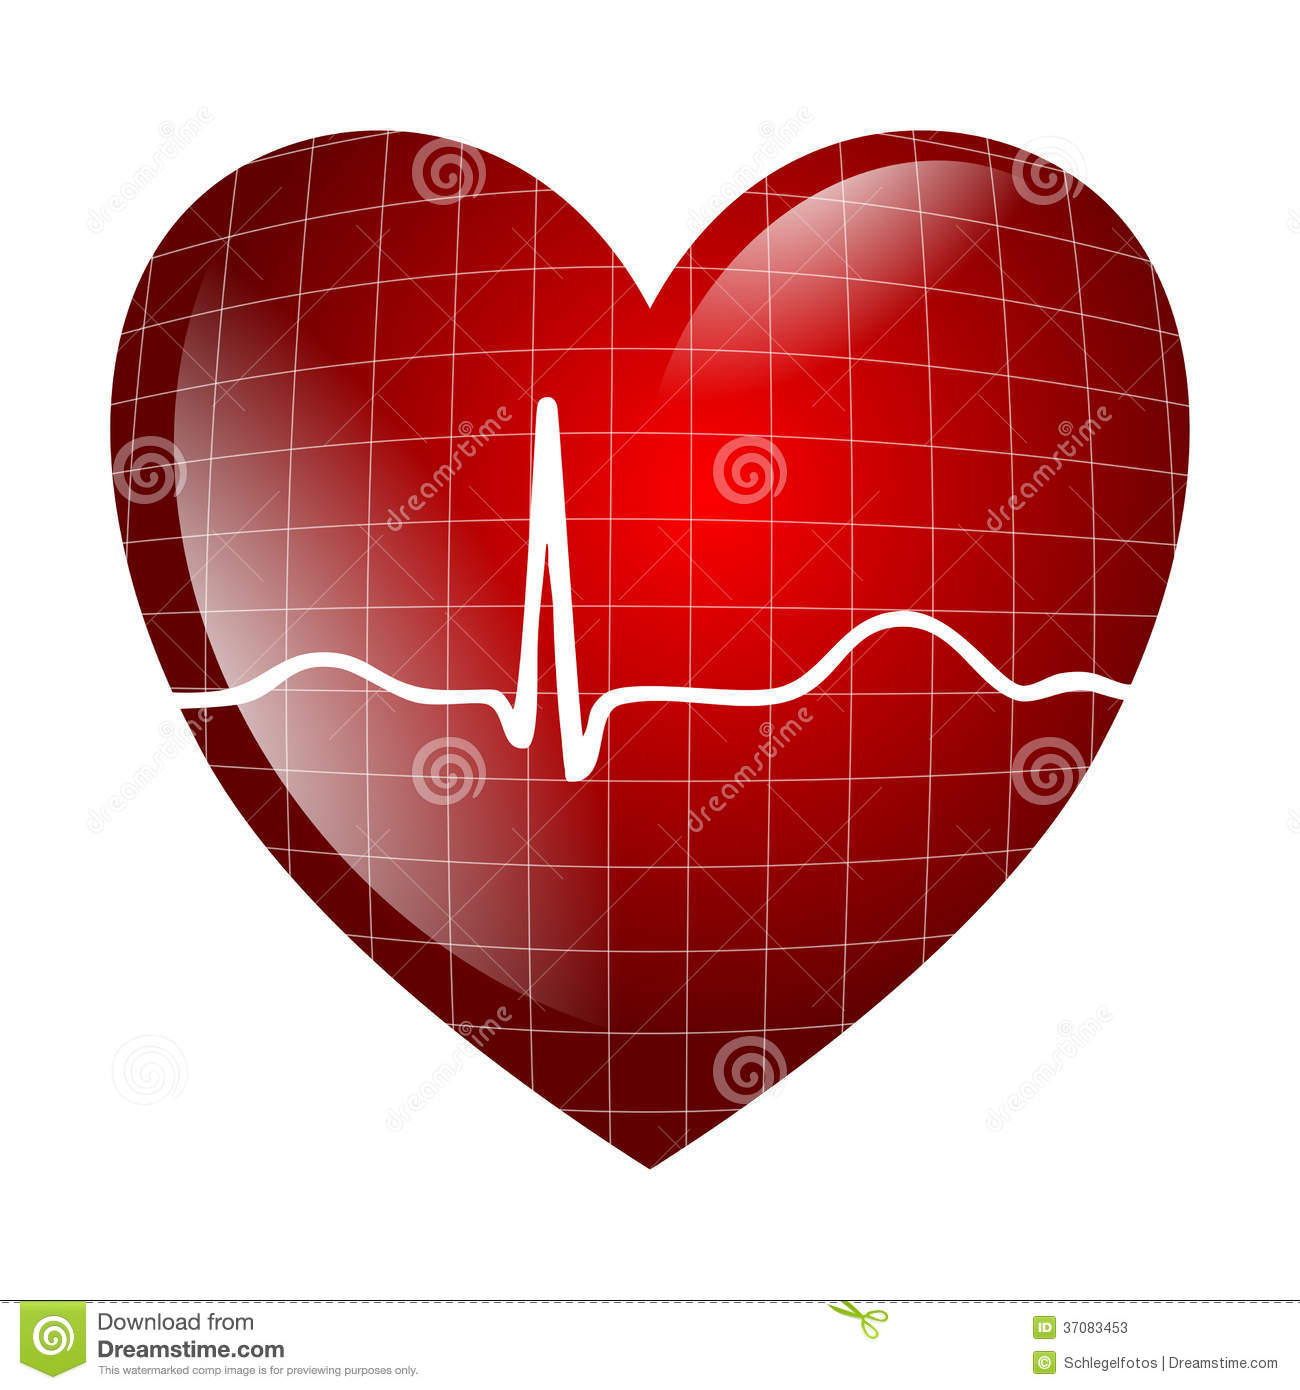 Heart Electrocardiogram Stock Photos - Image: 37083453